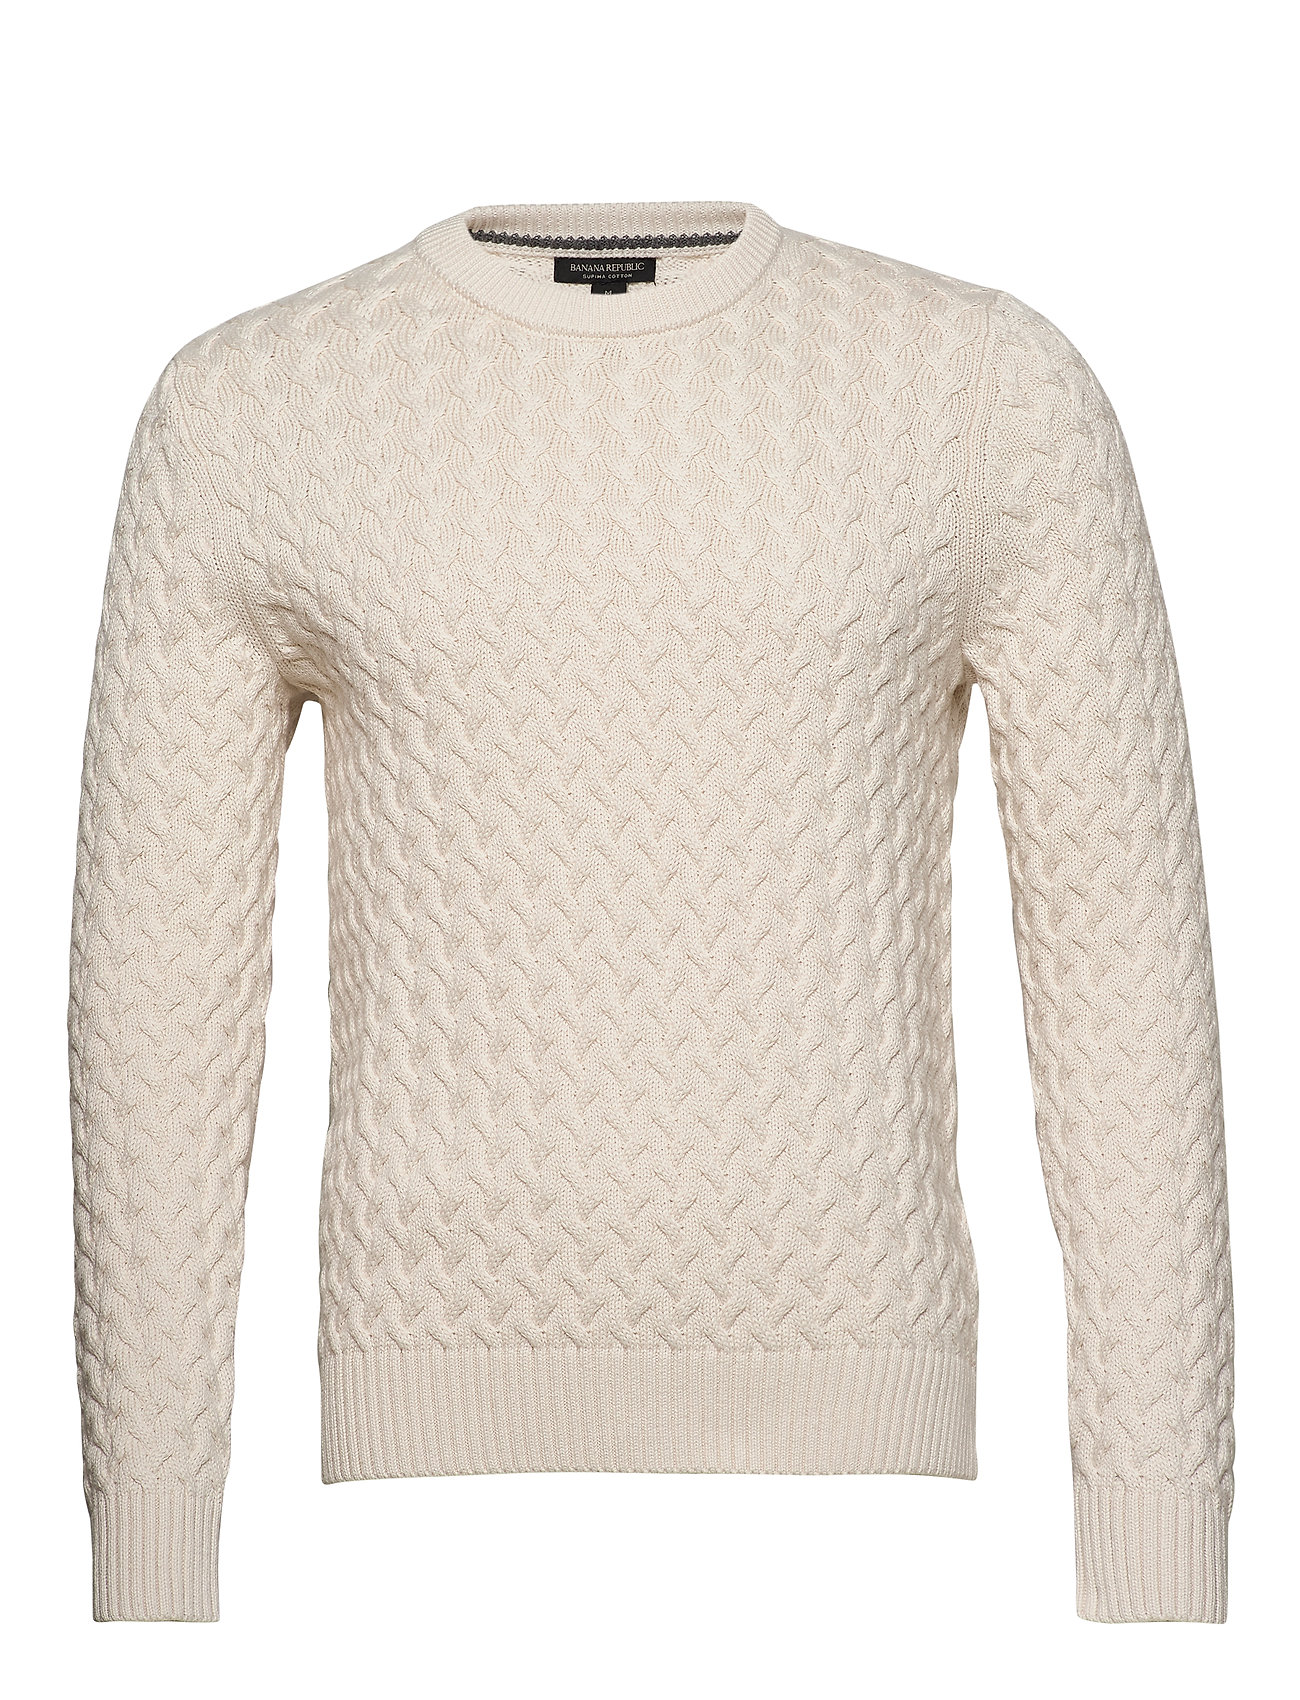 Banana Republic SUPIMA® Cotton Cable-Knit Sweater - TRANSITION CREAM